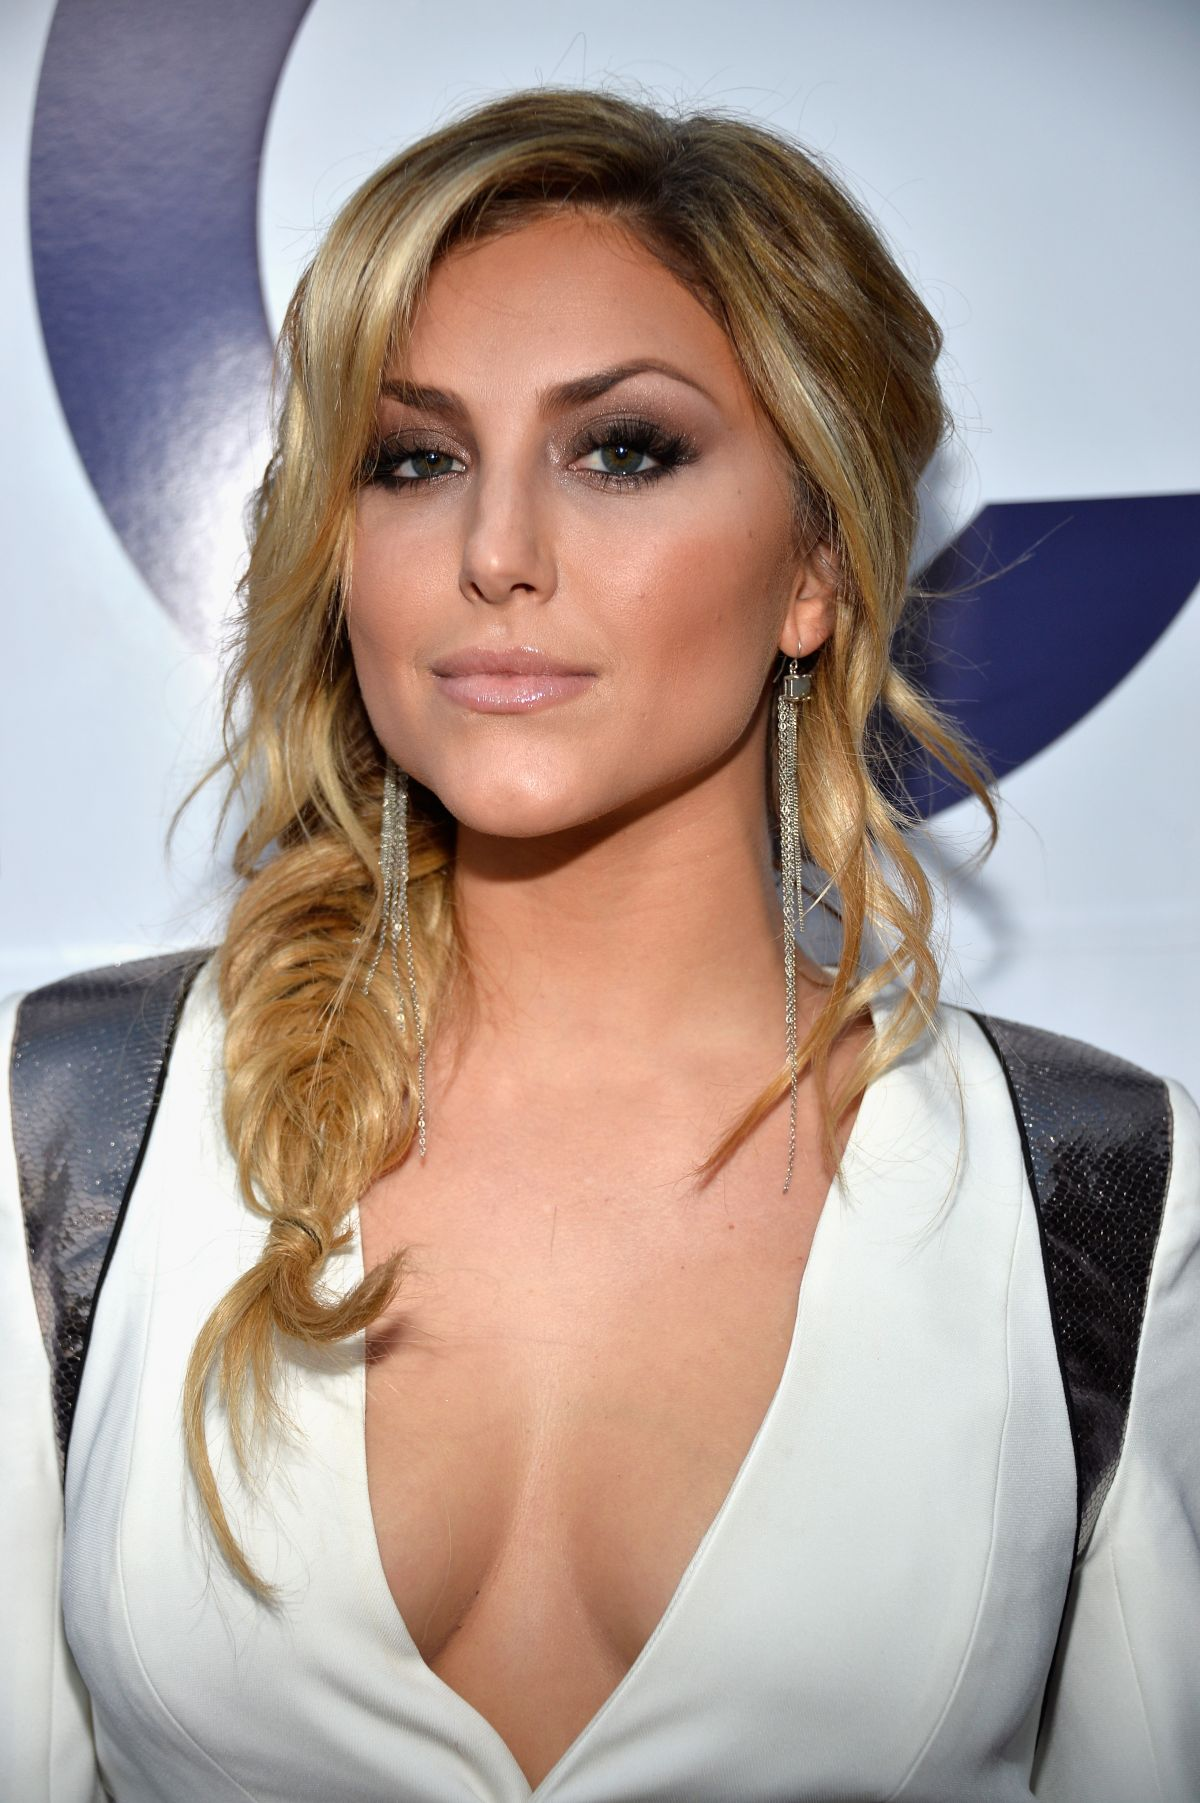 cassie scerbo gifcassie scerbo instagram, cassie scerbo gif, cassie scerbo interview, cassie scerbo vk, cassie scerbo facebook, cassie scerbo snapchat, cassie scerbo official website, cassie scerbo family, cassie scerbo, cassie scerbo movies, cassie scerbo bikini, cassie scerbo sharknado 3, cassie scerbo 2015, cassandra scerbo twitter, cassie scerbo tumblr, cassie scerbo and cody longo, cassie scerbo wiki, cassie scerbo fansite, cassie scerbo boyfriend, cassie scerbo net worth